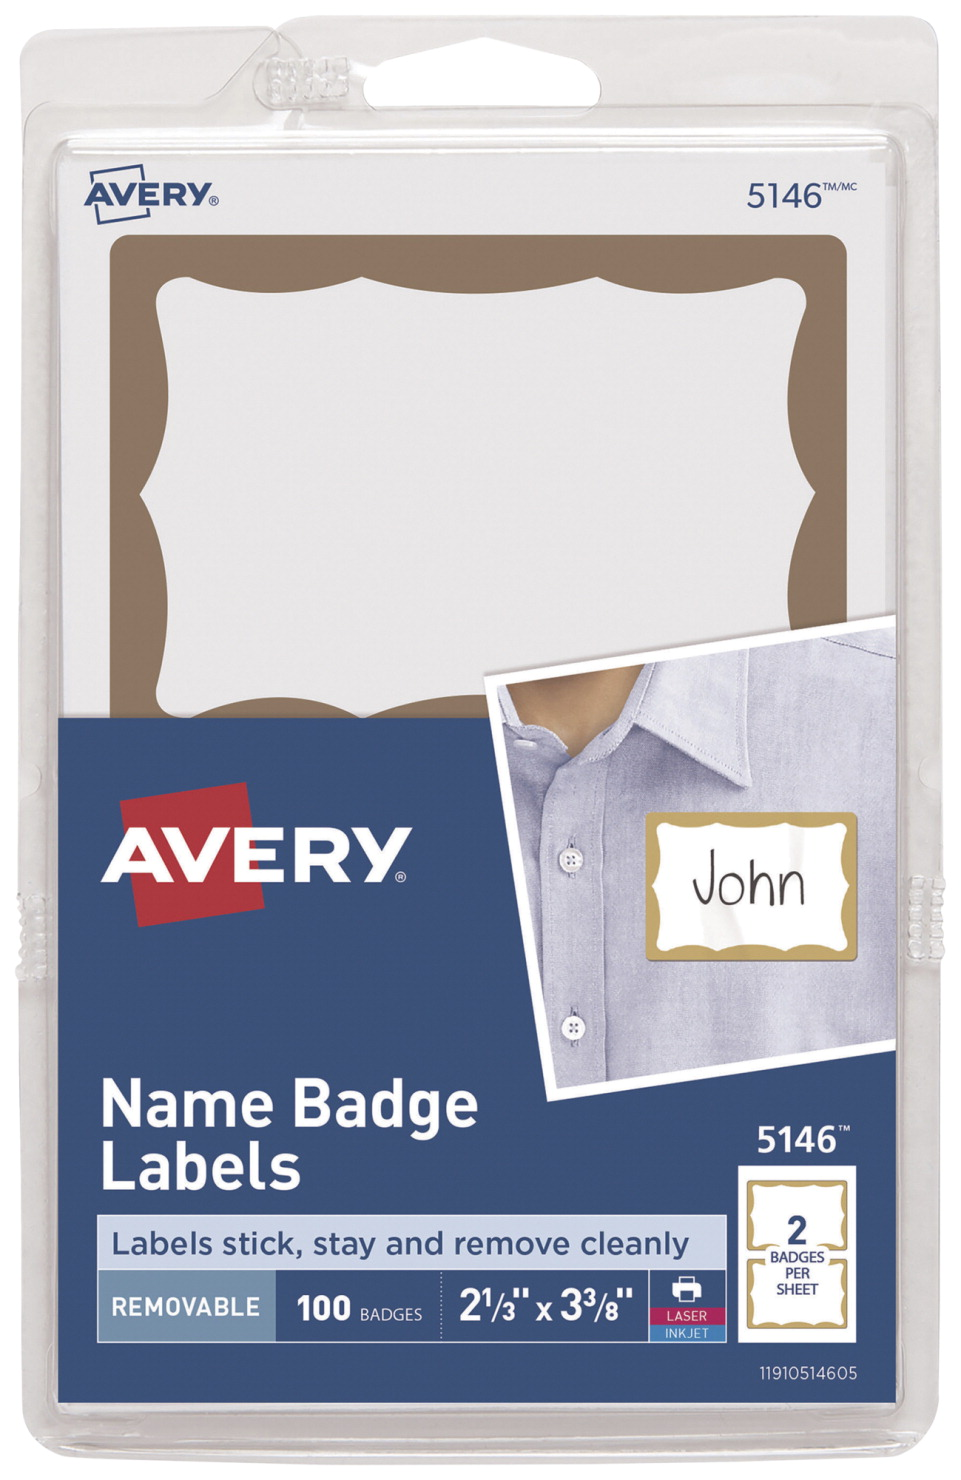 Avery 5146 Name Badge Labels with Gold Border, 2-11/32 x 3-3/8 Inches, Pack  of 100